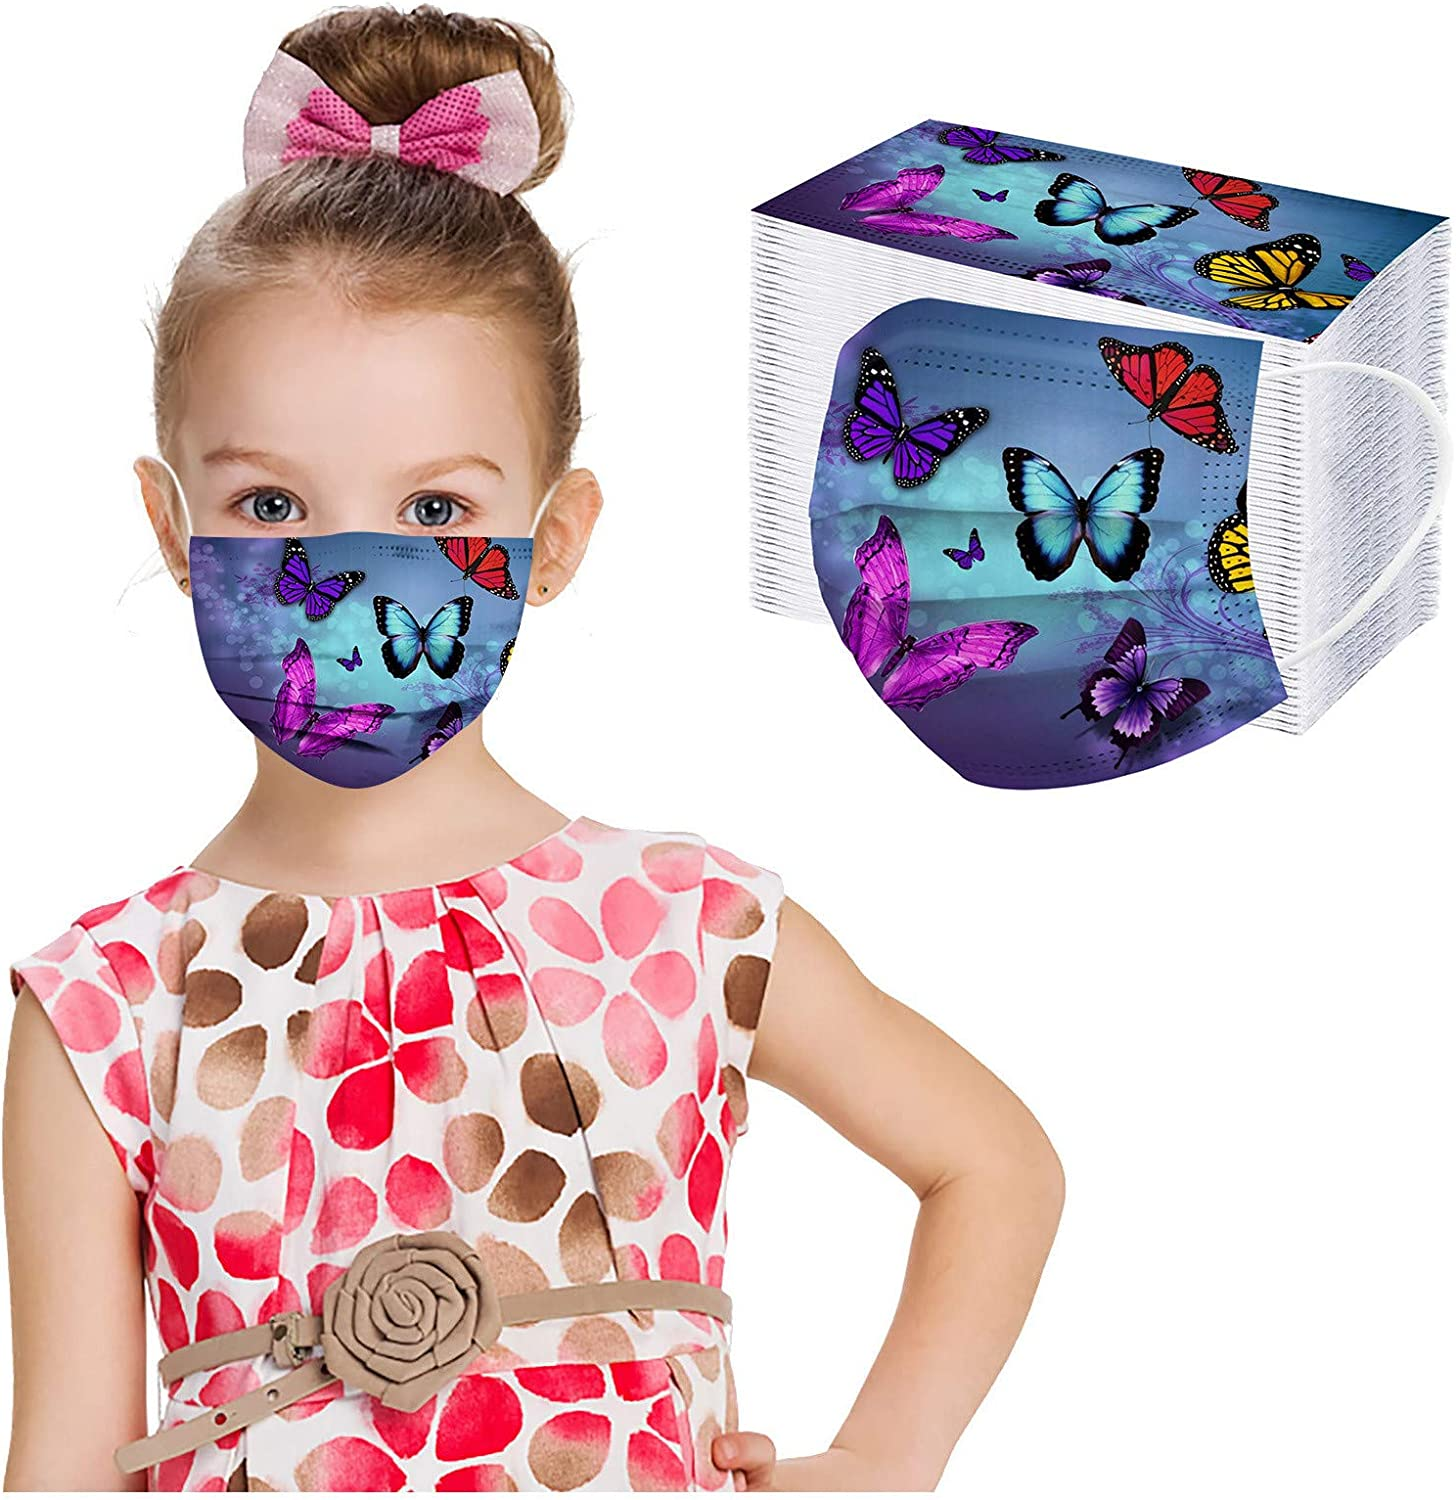 Kids Disposable 3 Ply Breathable & Comfortable Face Mouth Filter Tools for Children Colorful Cartoon Design